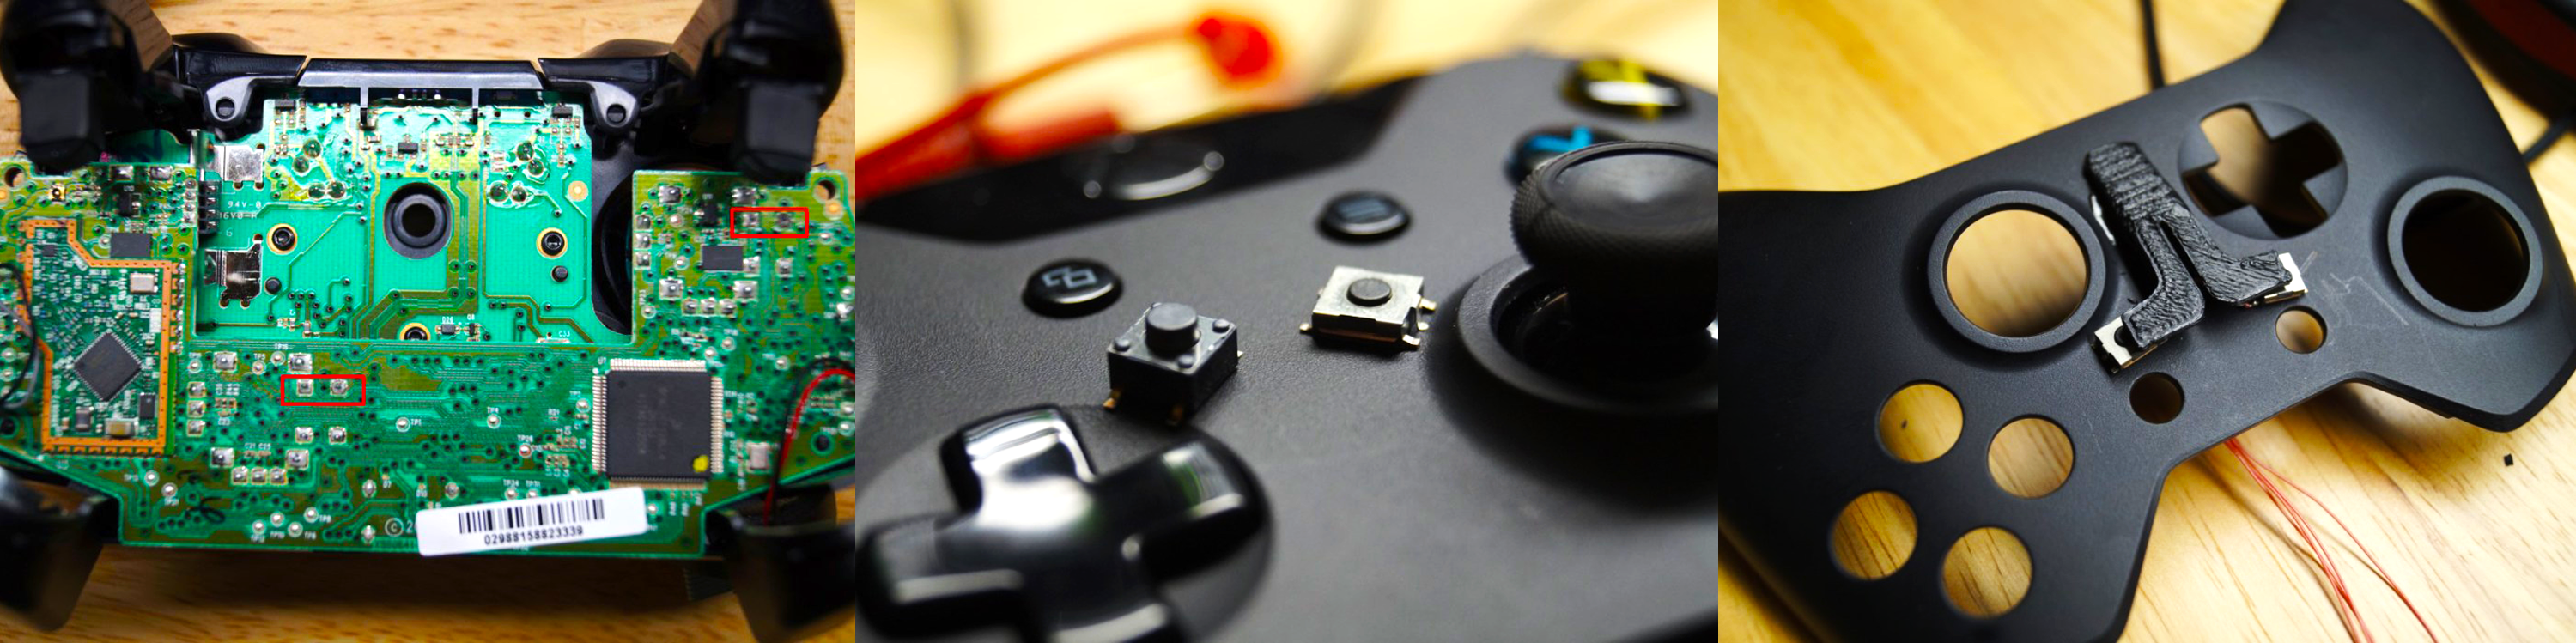 3D Printed Xbox Hack Enables a Differently Abled World